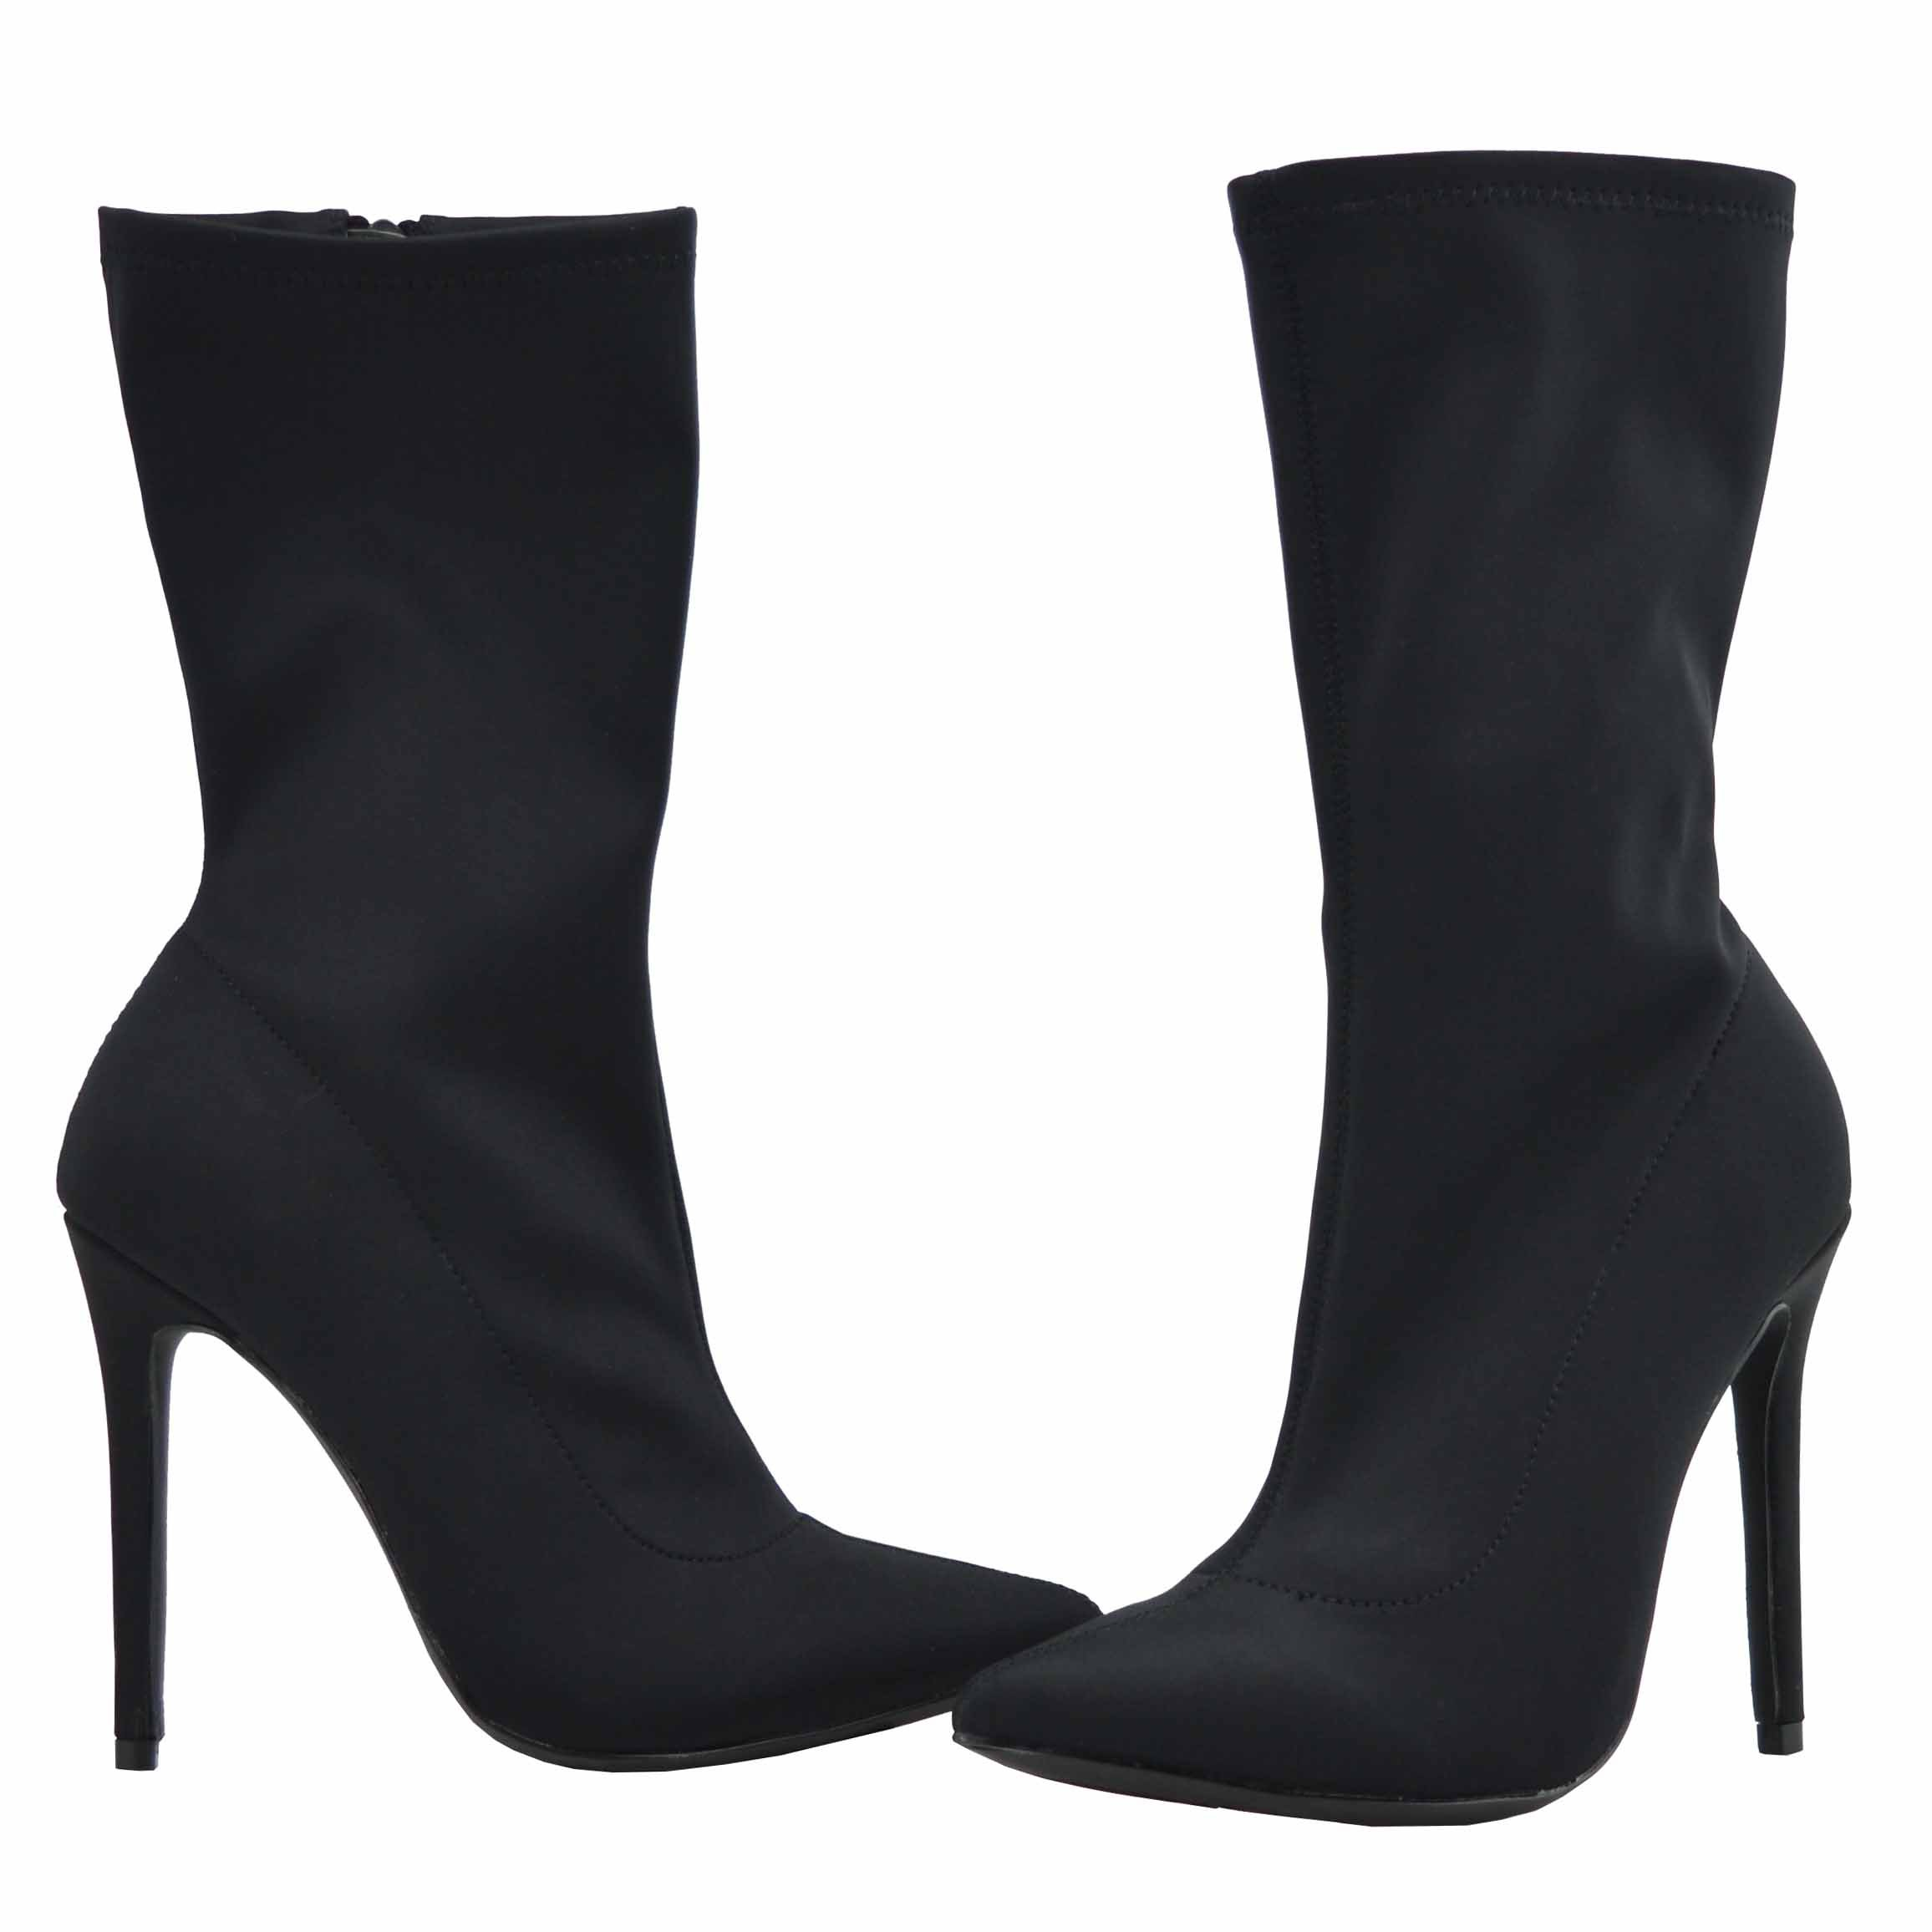 Olivia and Jaymes Women's Pointed Toe Ankle Booties Stretch Lycra Pull On Side Zipper Pencil Stiletto Heel Boots (9, Black) by Olivia and Jaymes (Image #2)